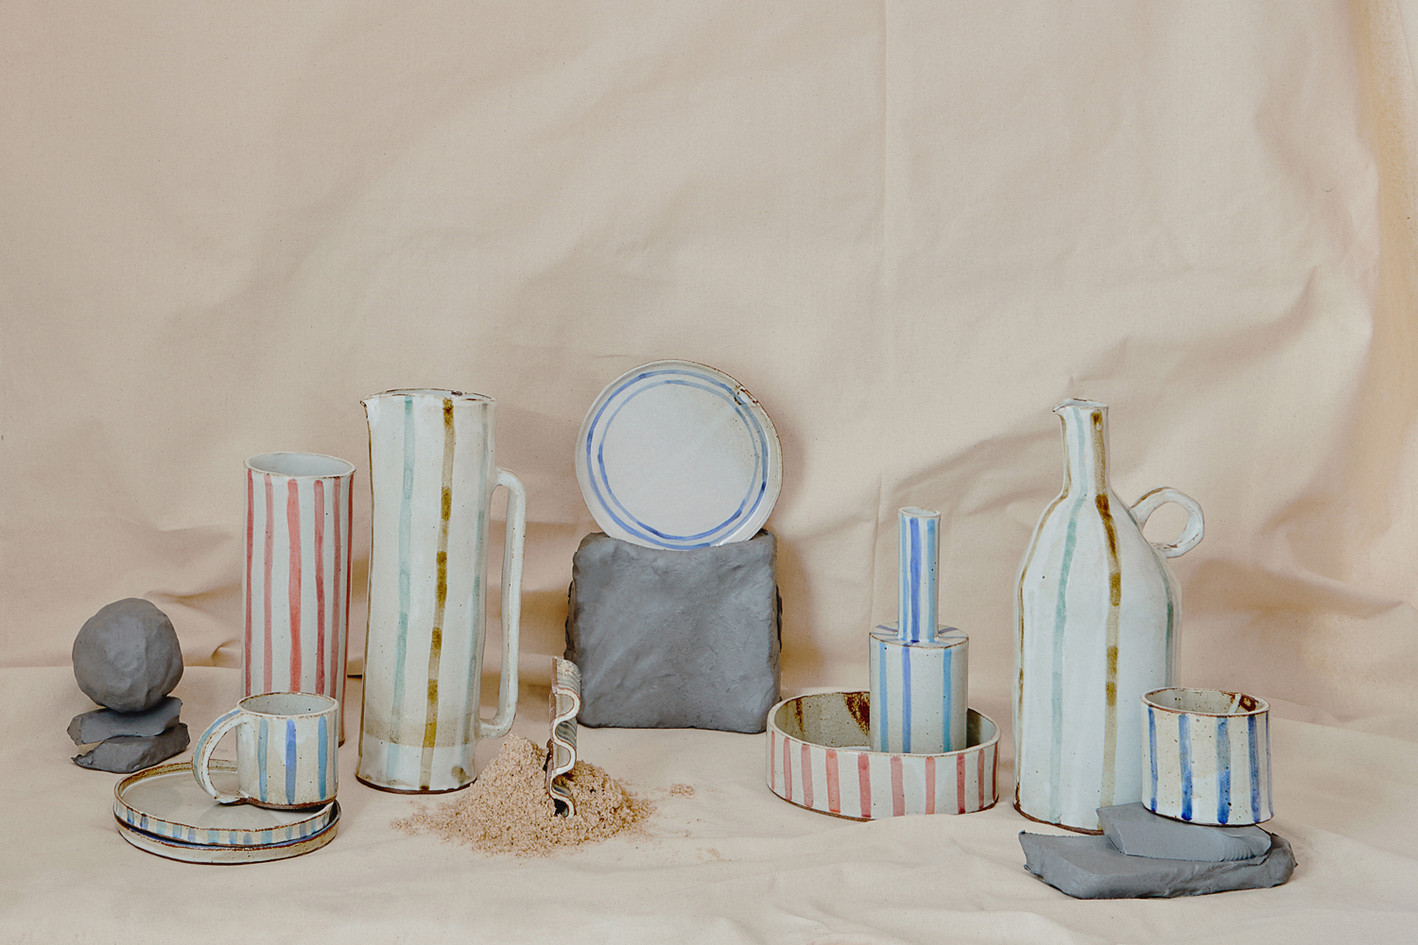 Chantal Strasburger Ceramics